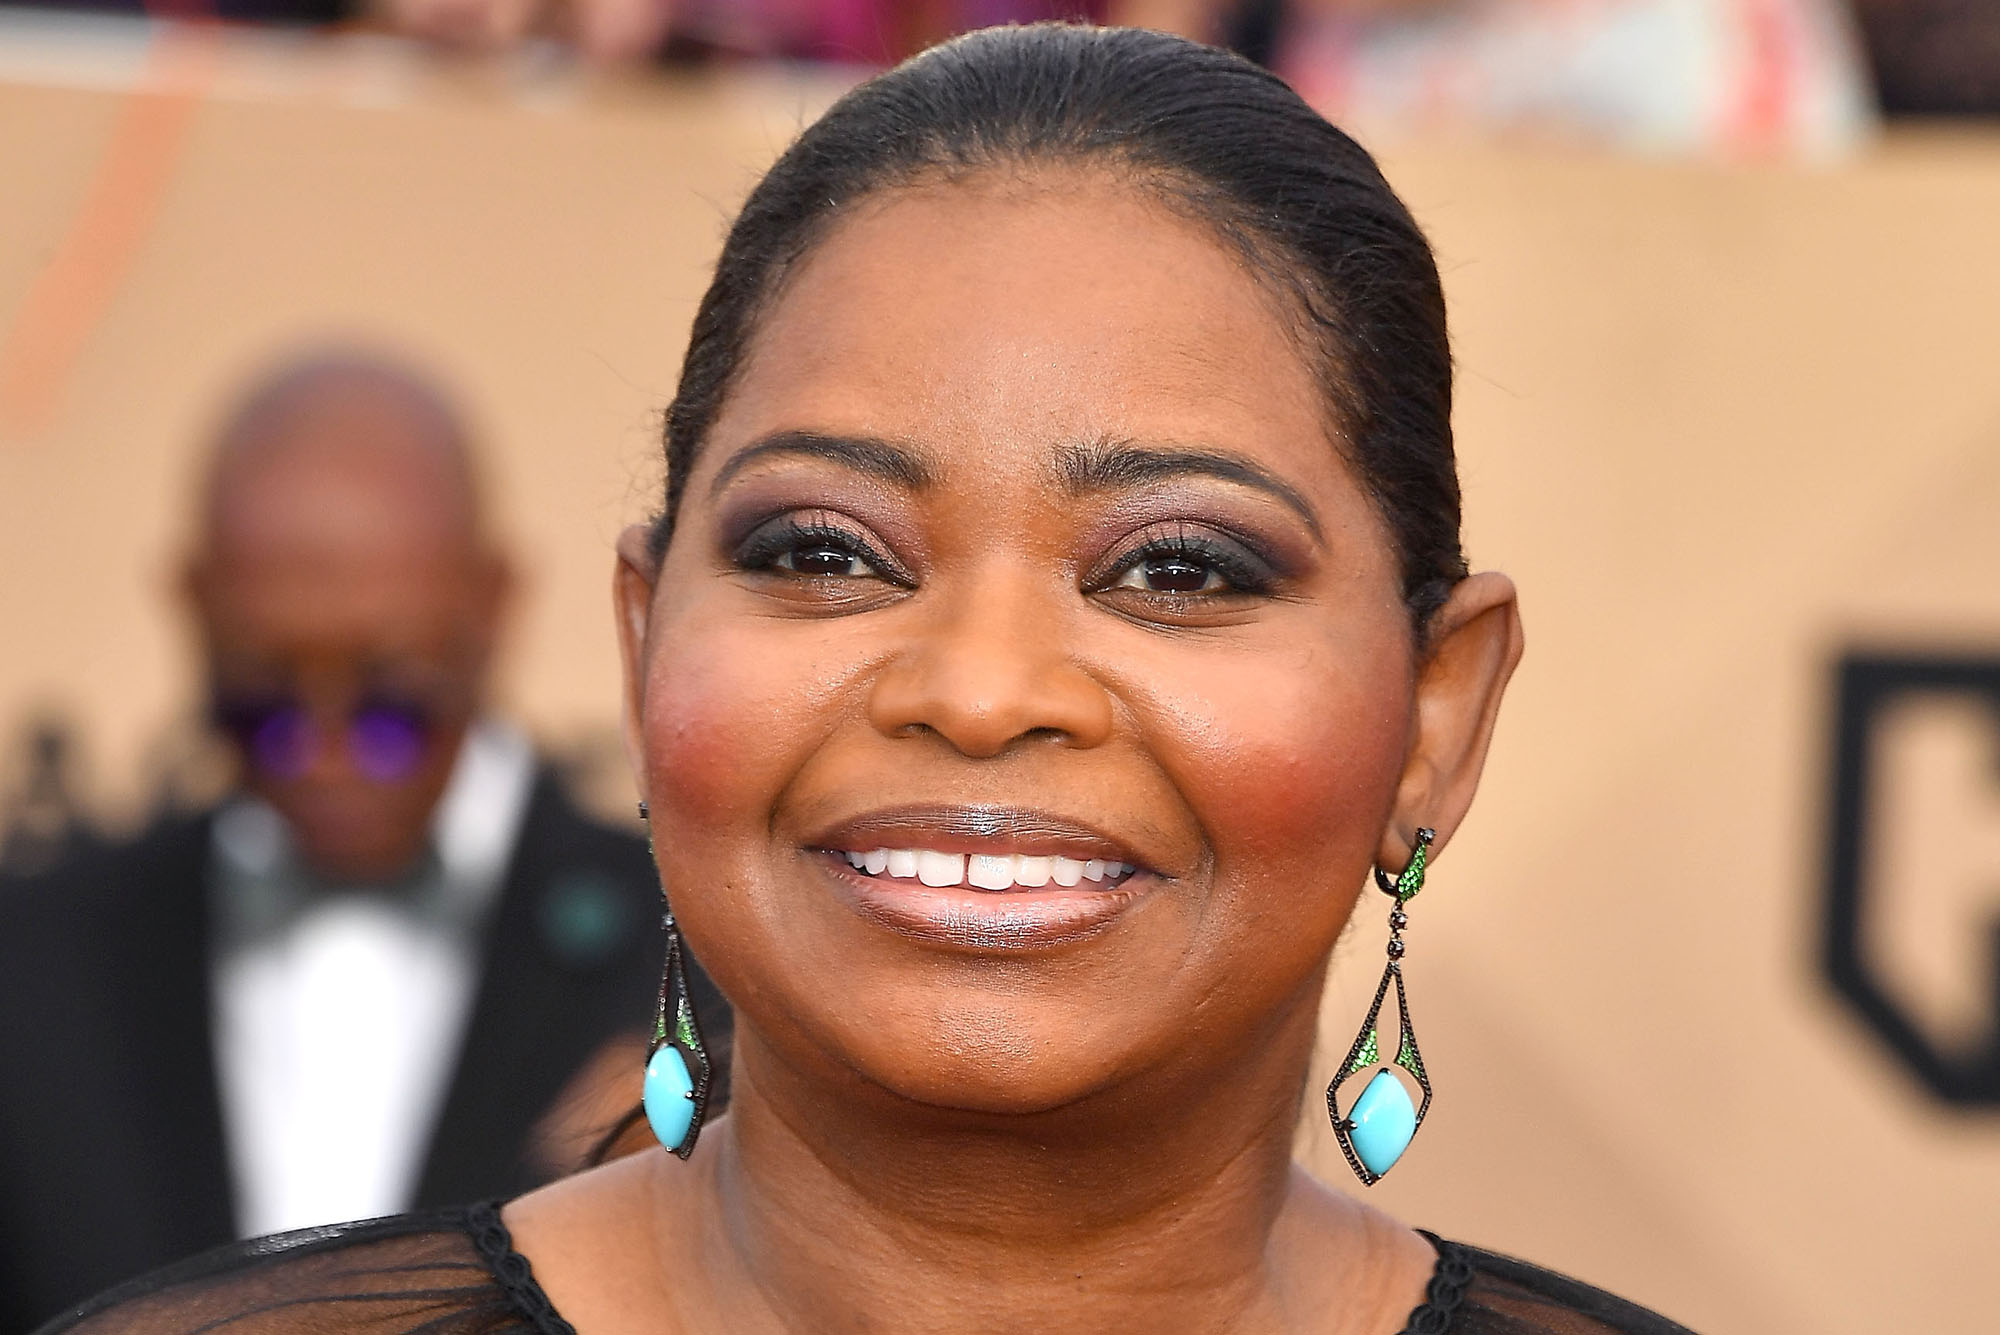 Octavia Spencer arrives at the 23rd Annual Screen Actors Guild Awards at The Shrine Expo Hall on January 29, 2017 in Los Angeles, California.